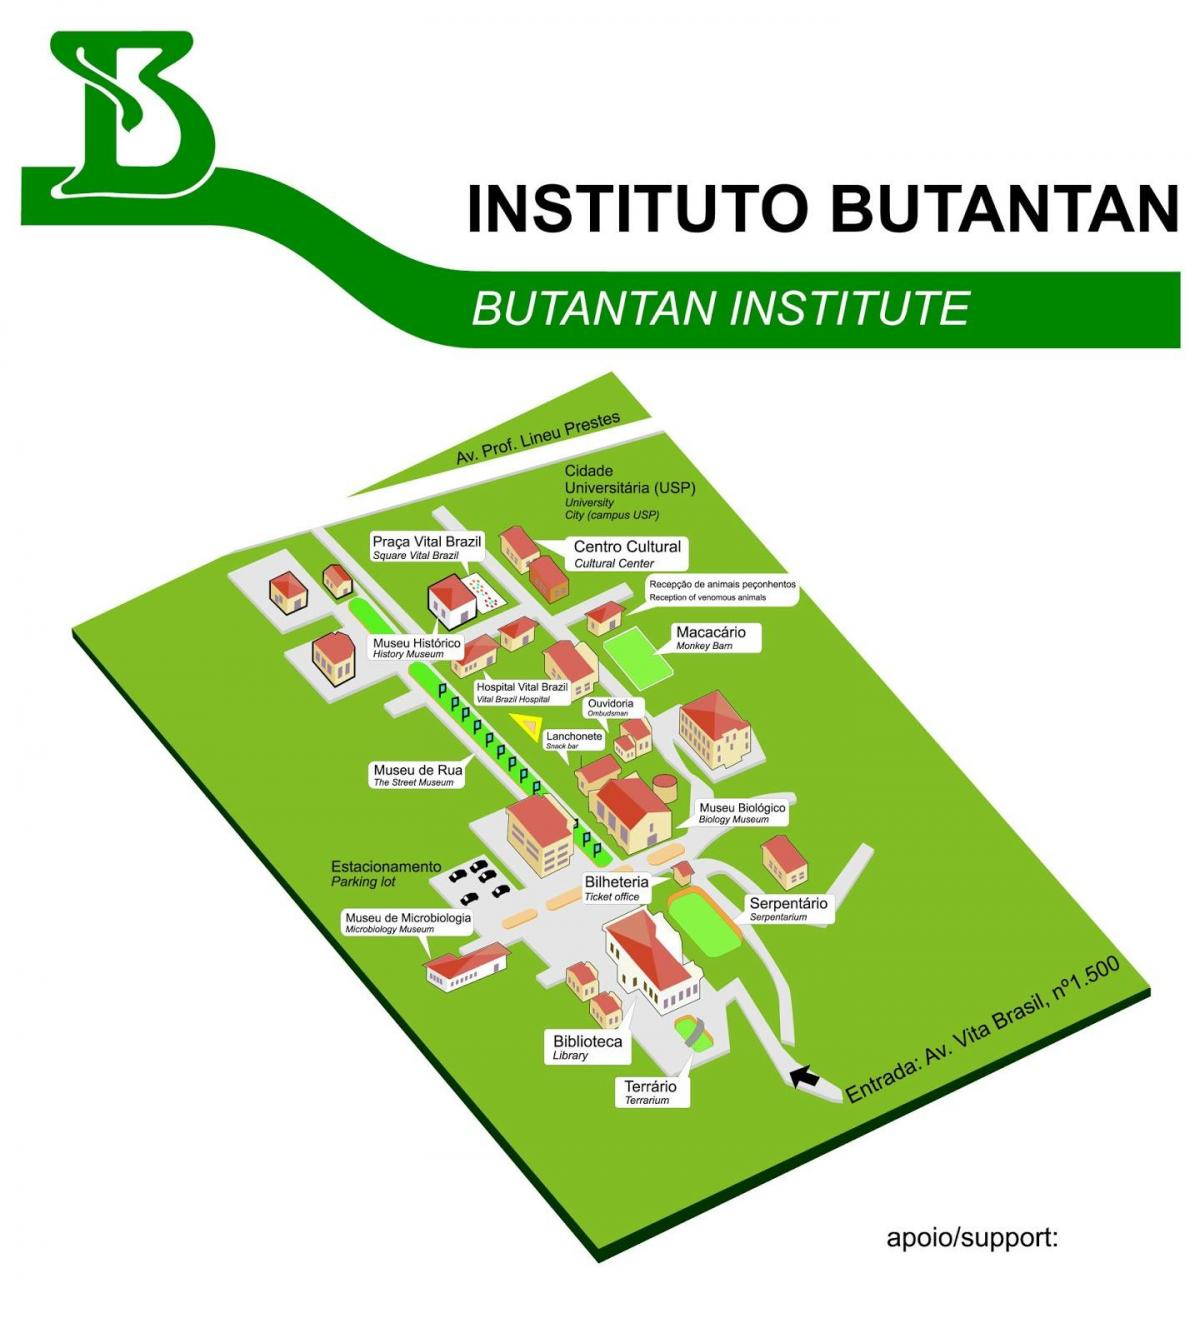 Mapa do instituto Butantan